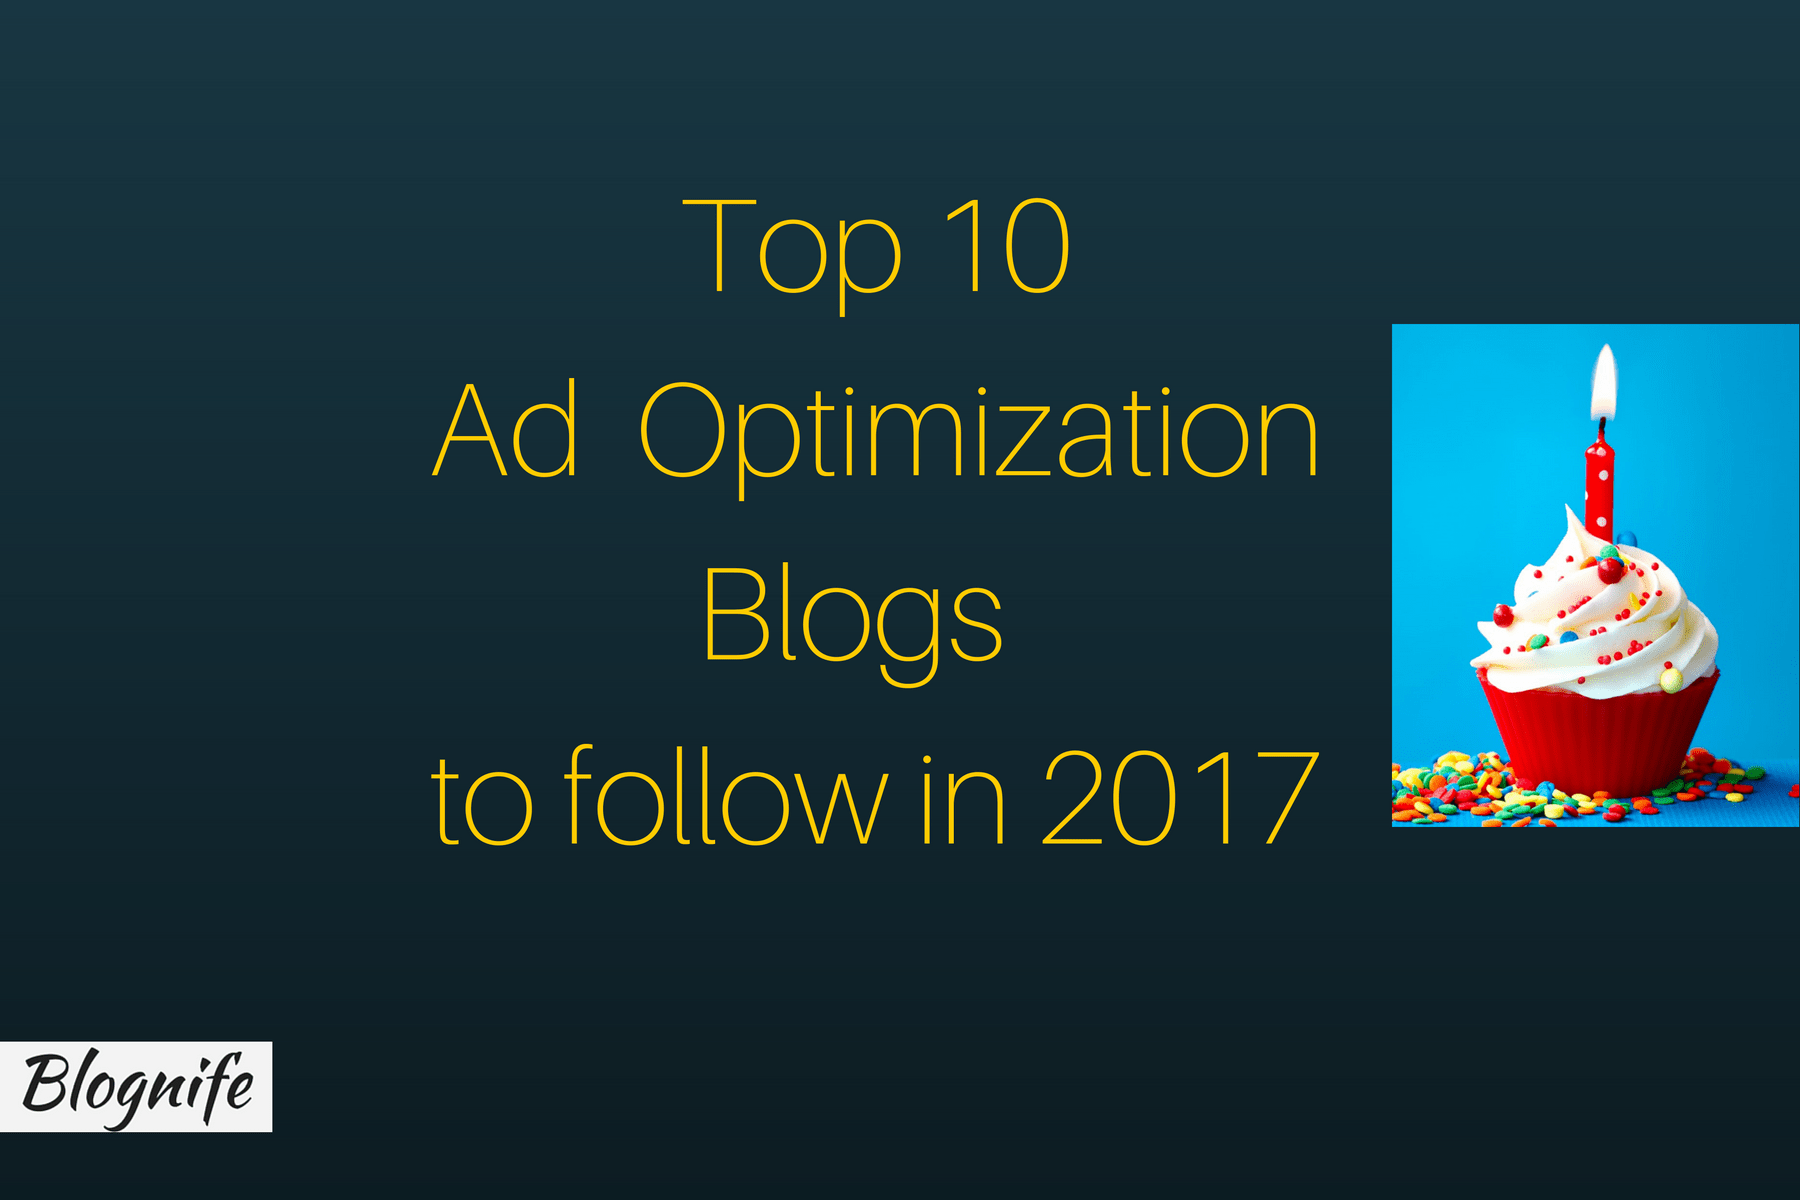 Top 10 Ad Optimization Blogs to Follow in 2017